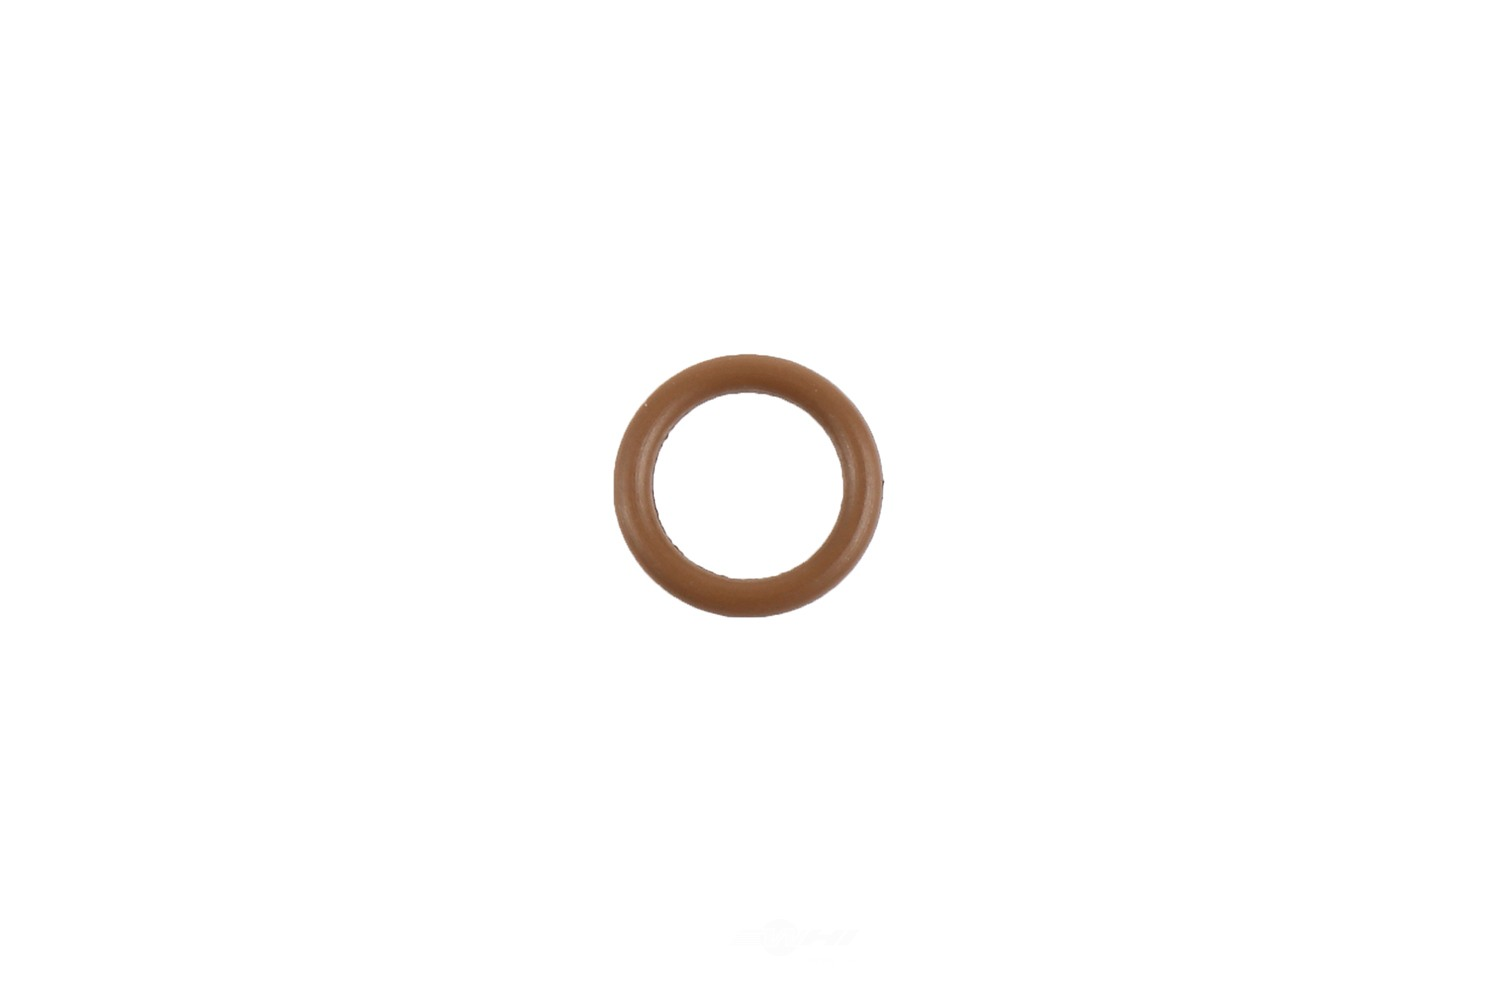 ACDELCO GM ORIGINAL EQUIPMENT - Fuel Injection Fuel Return Pipe O-Ring - DCB 19258137